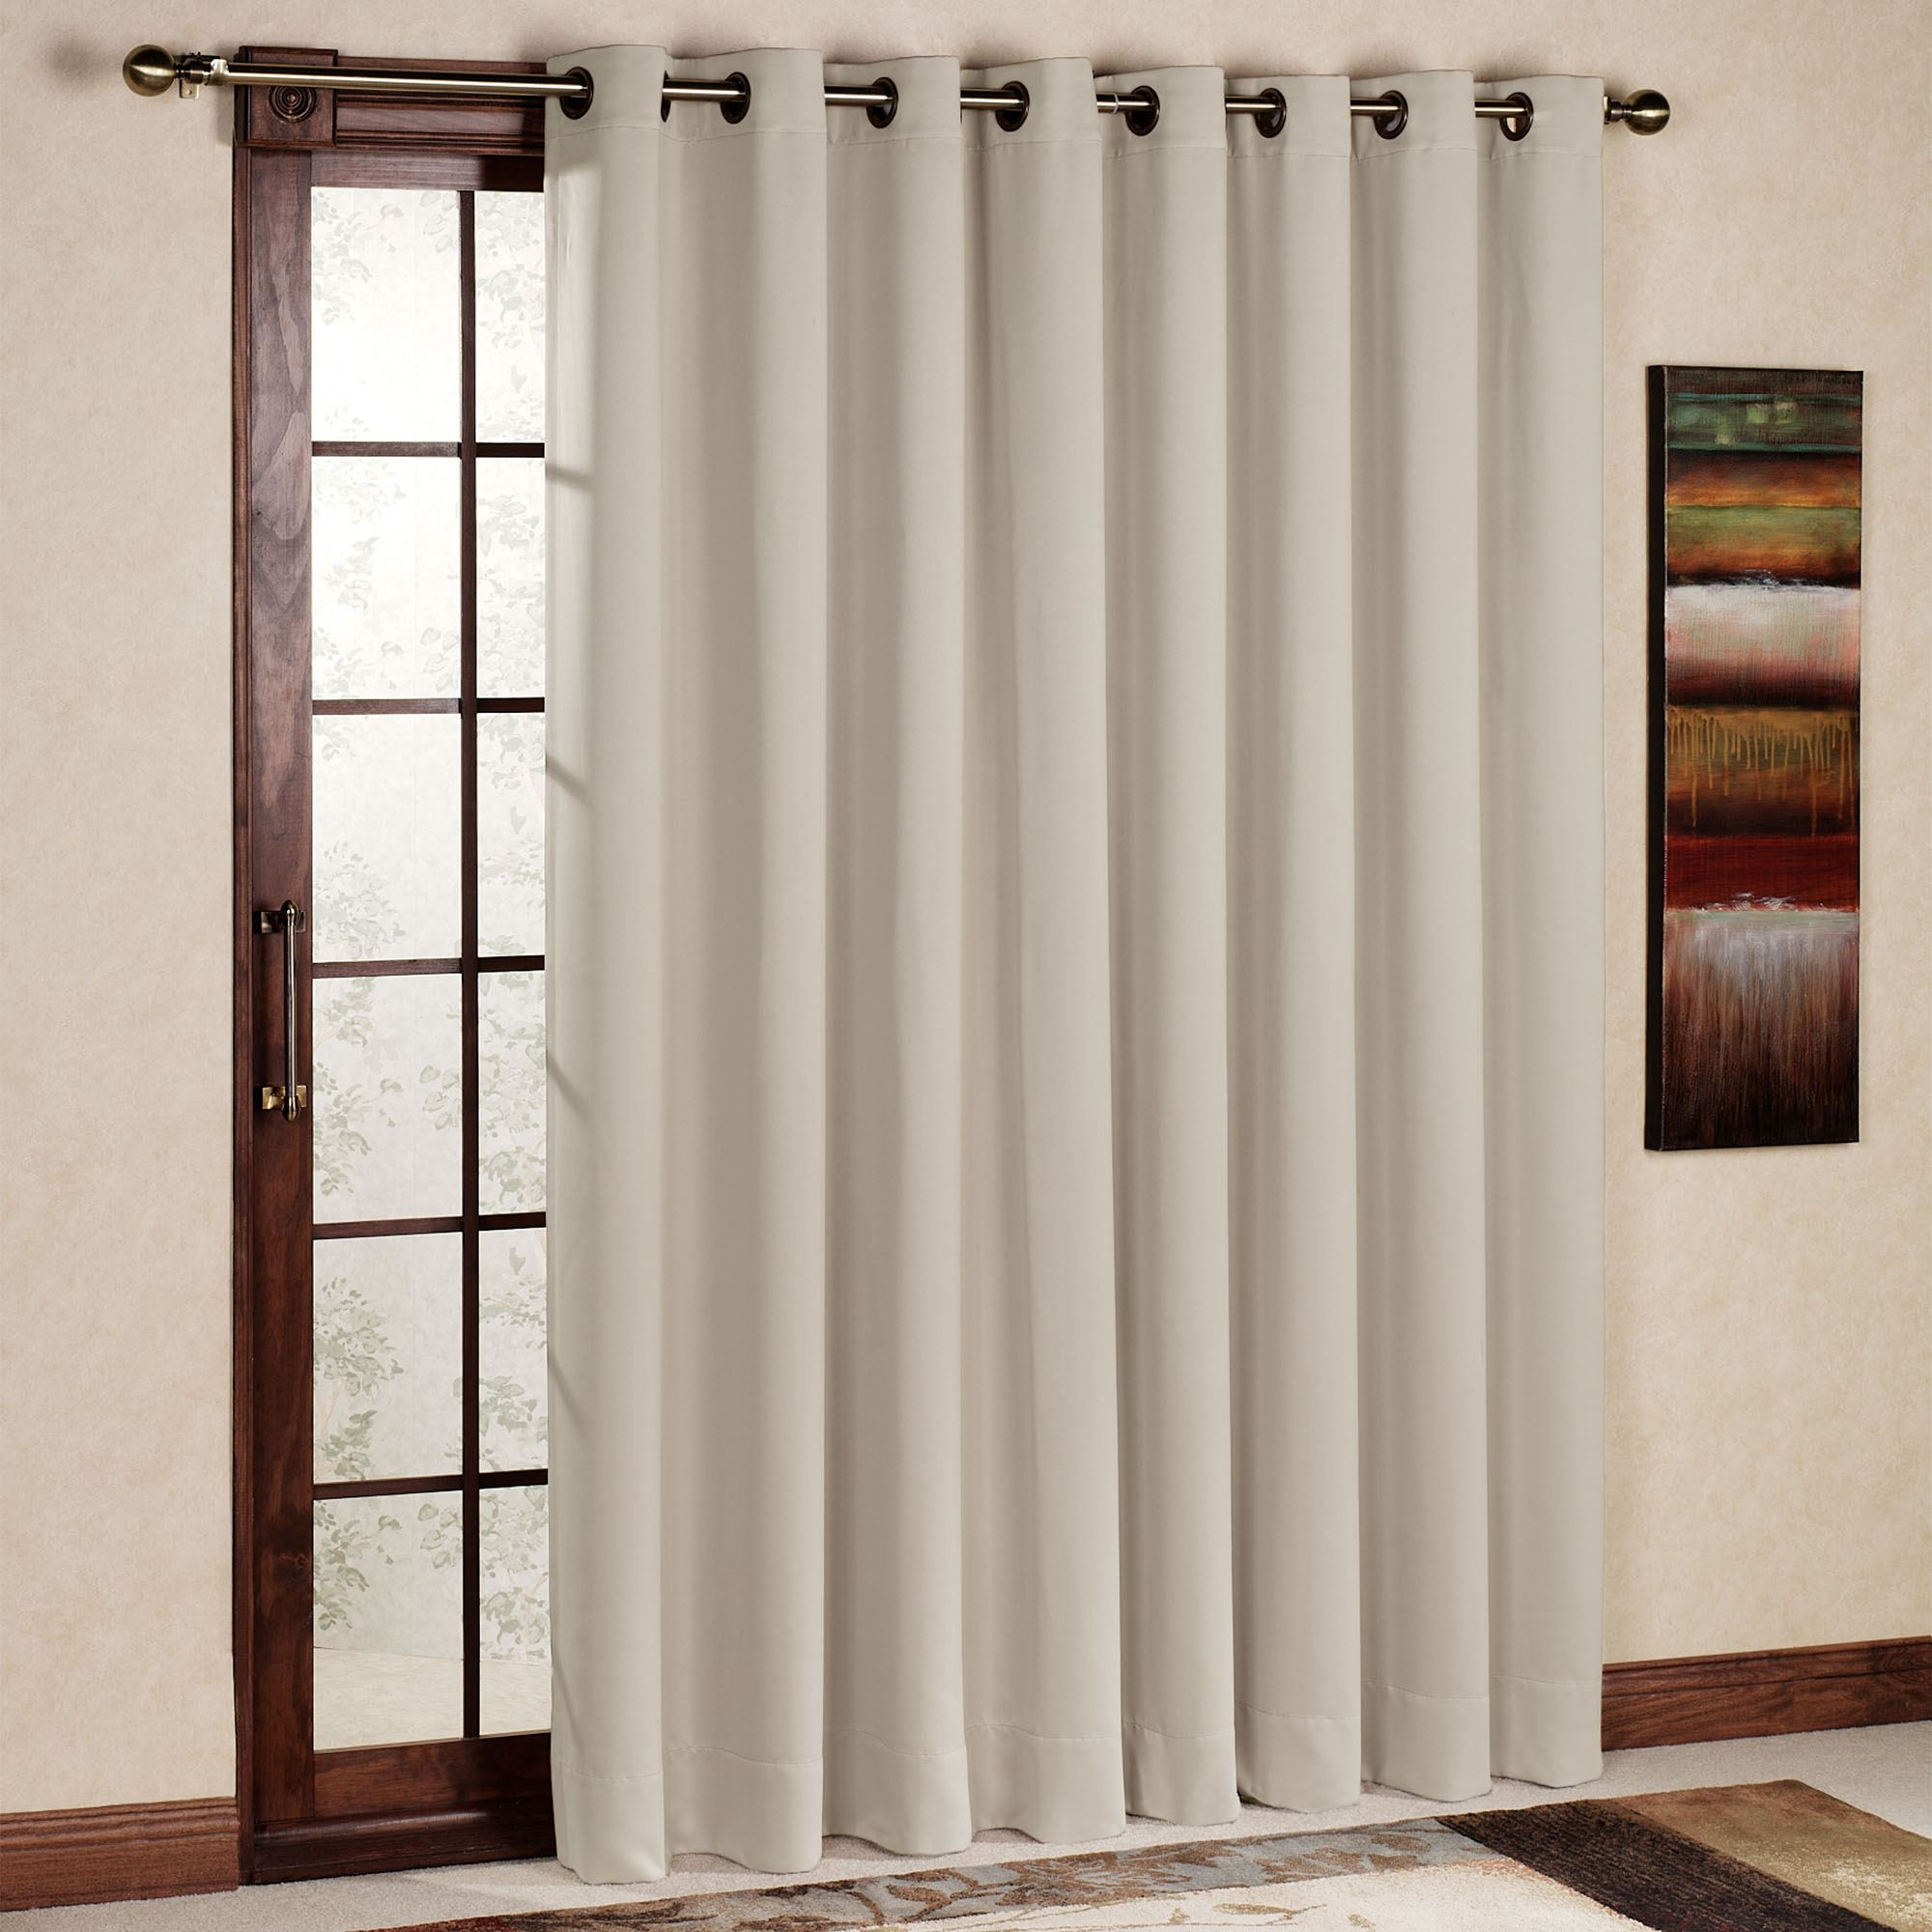 Patio door curtain panels touch of class ultimate blackout grommet patio panel planetlyrics Images